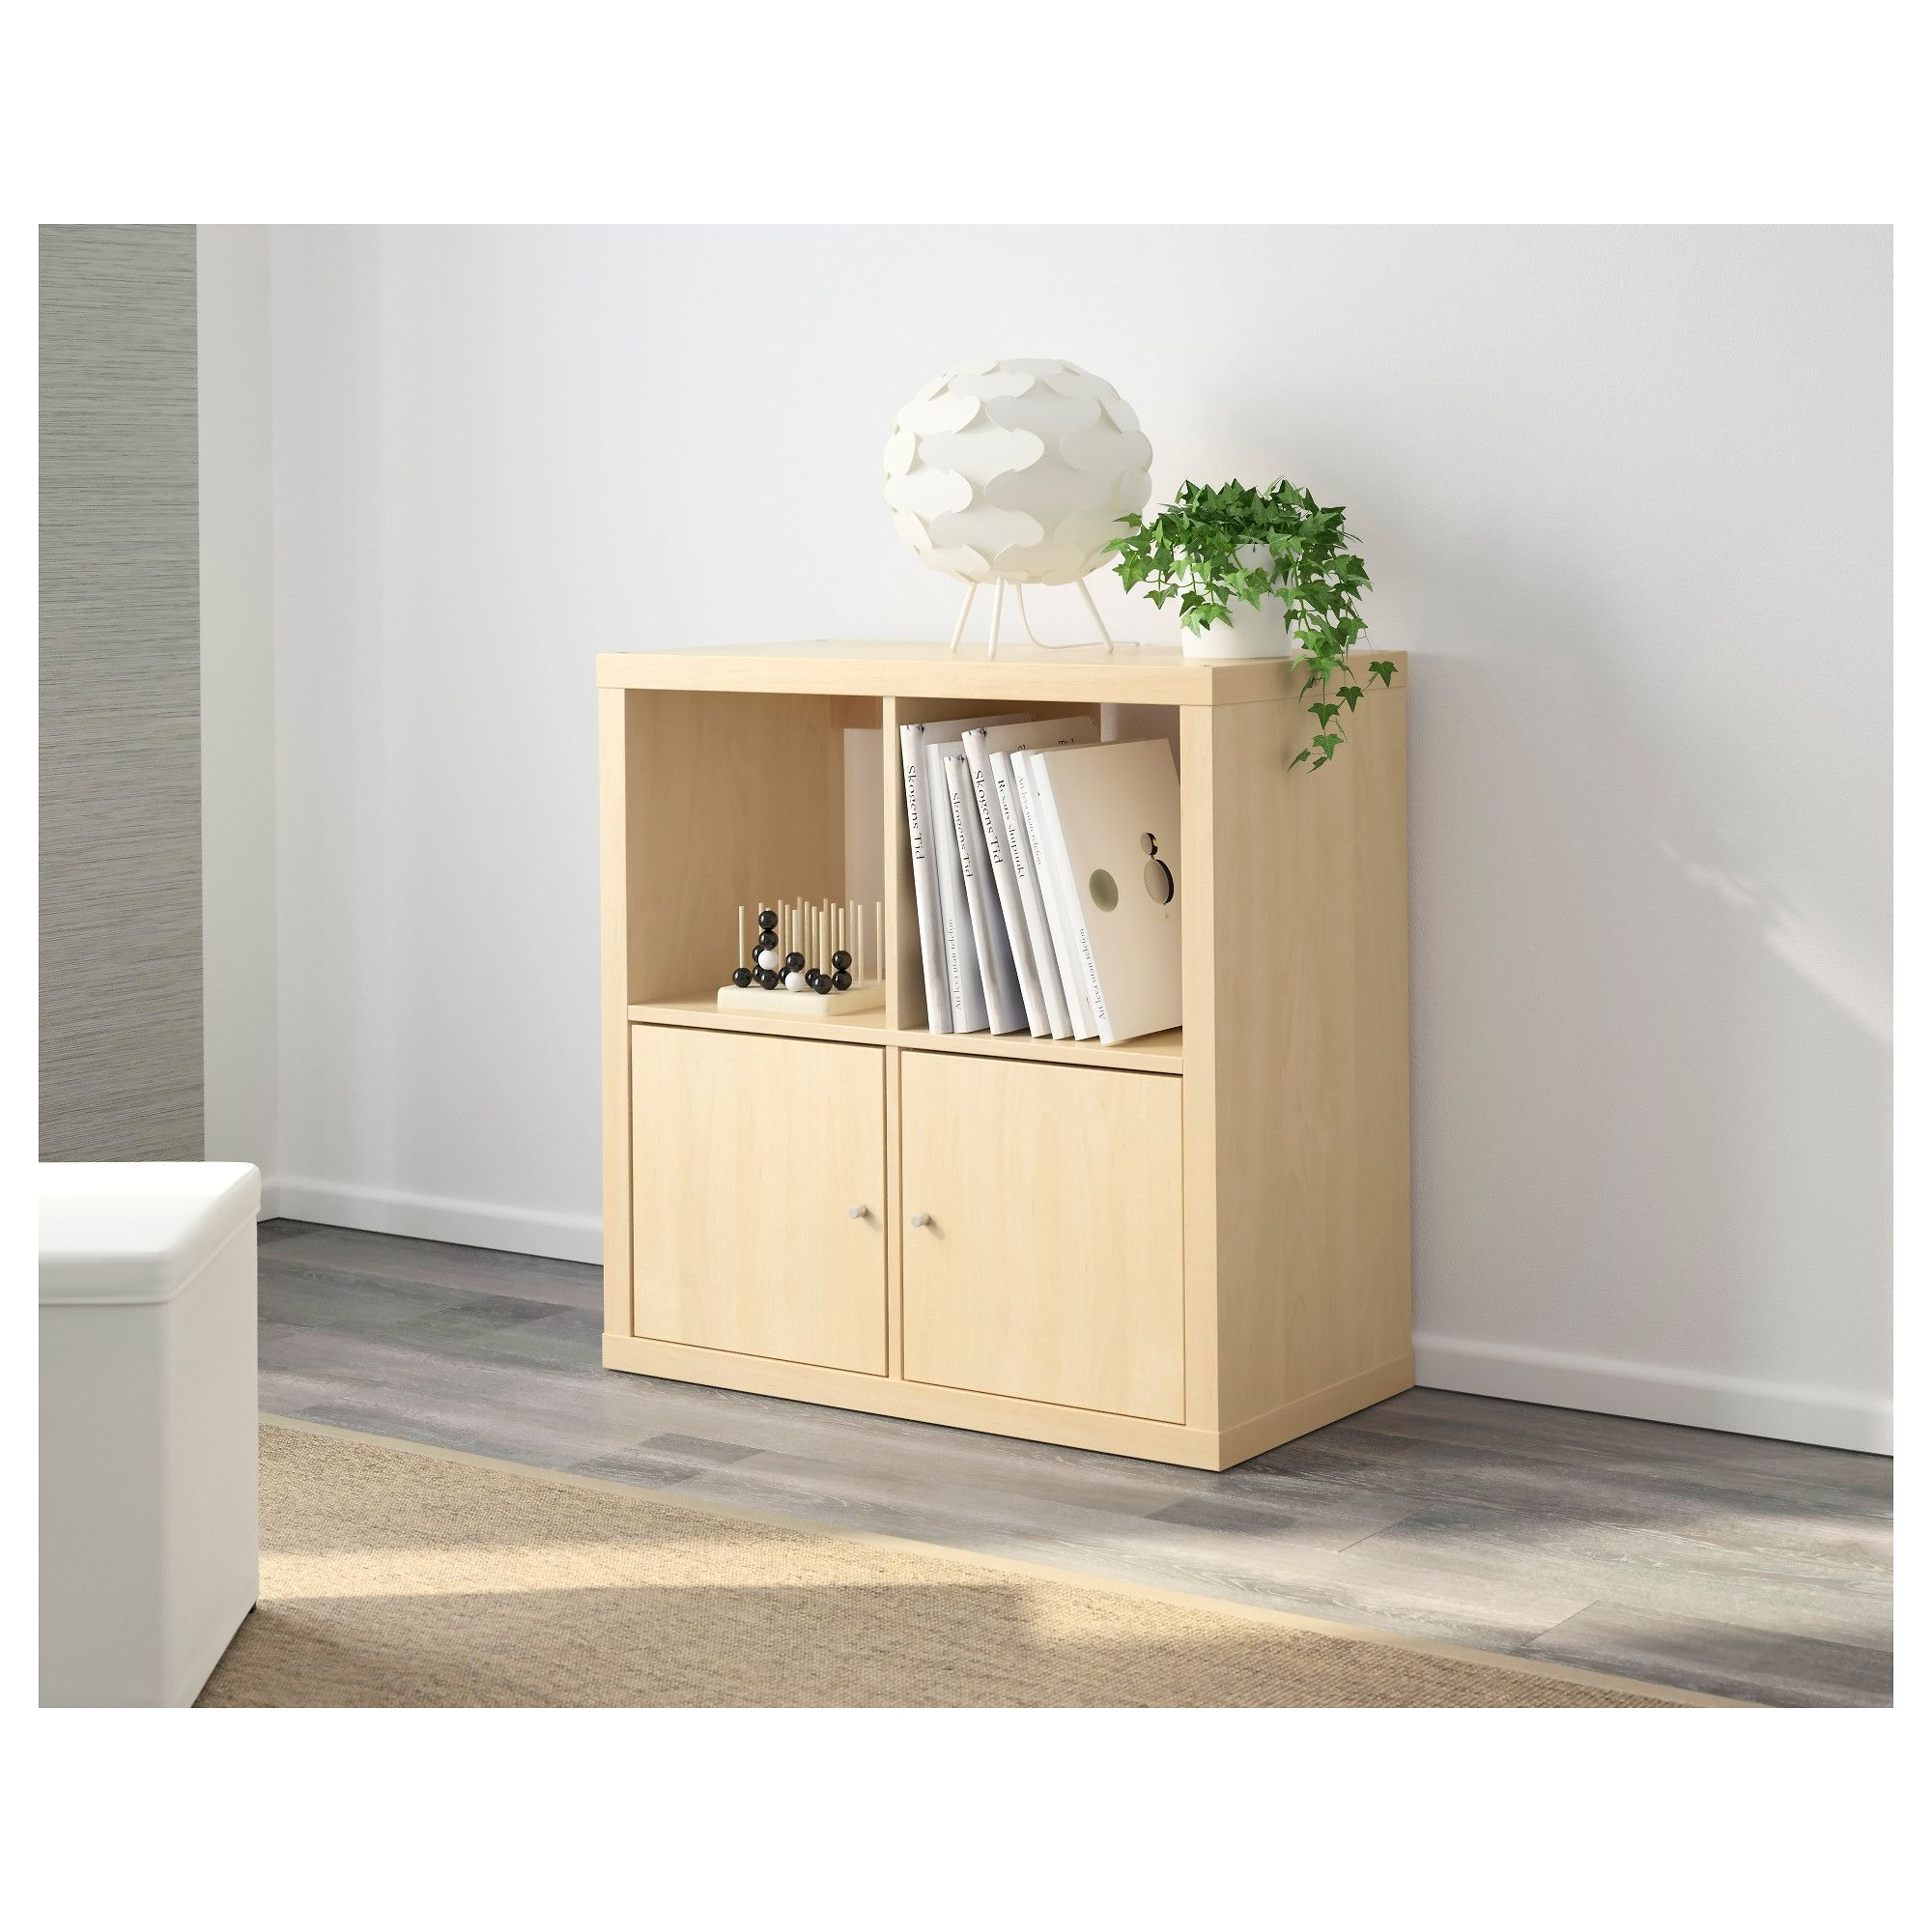 Masters Cube Storage Ikea Kallax Shelving Unit For The Slate Bedroom With